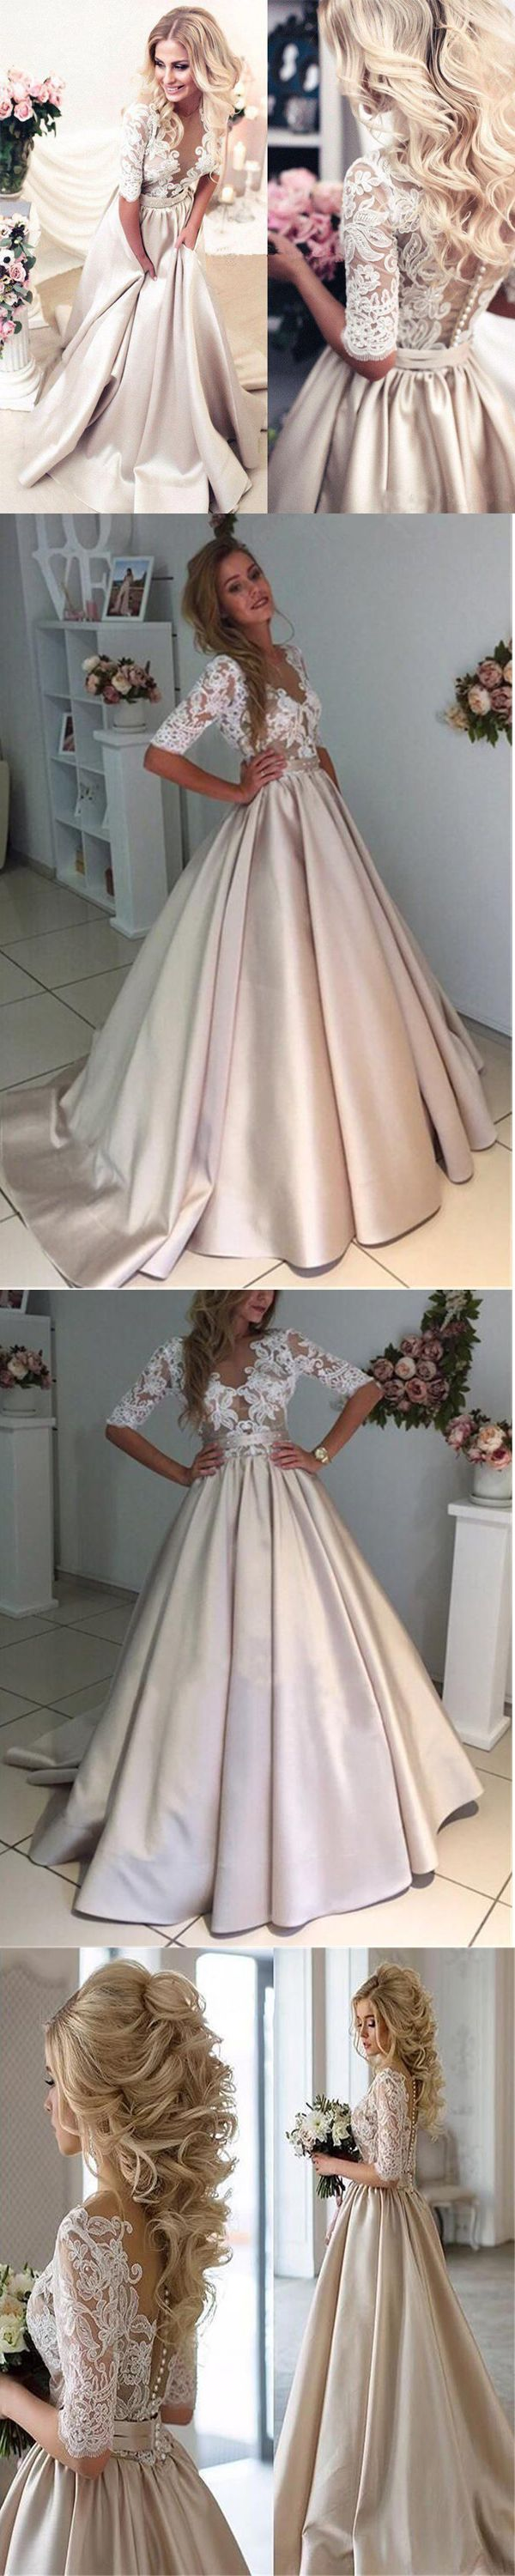 Princess White Lace Half Sleeves V Neck See Through Prom Dresses Evening Dress Party Gowns LD895 #promdress #champagnepromdress #lacepromdress #vneck #halfsleevespromdress